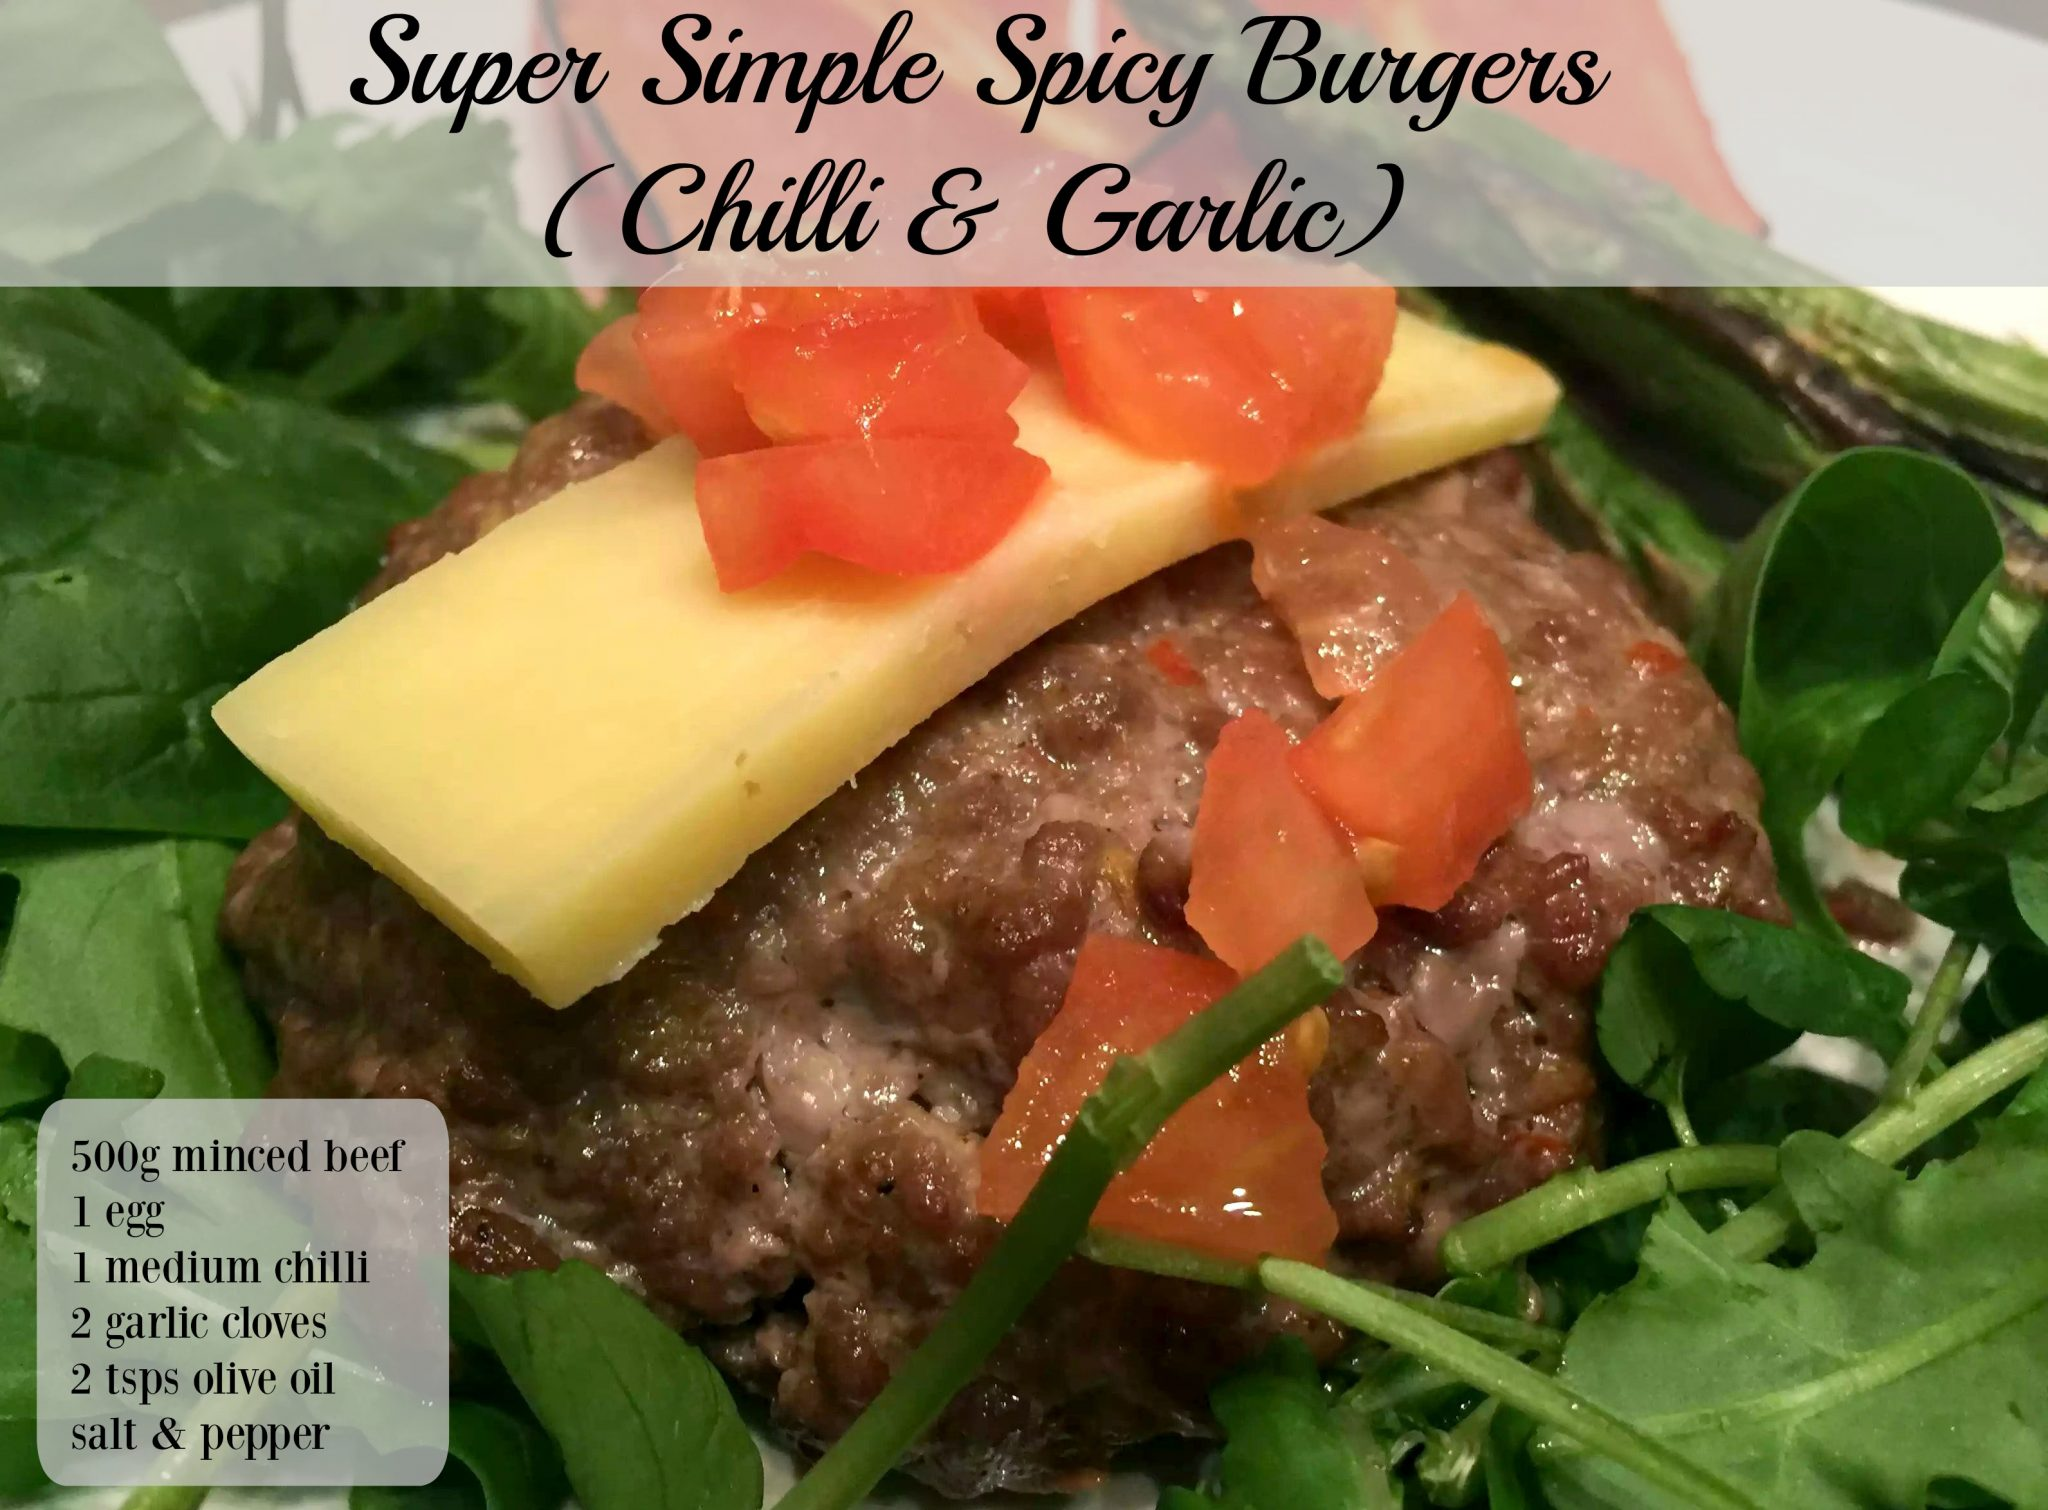 Super Simple Spicy Burgers (Chilli & Garlic by Emma Eats & Explores - SCD, Paleo, Grain-Free, gluten-Free, Dairy-Free, Clean Eating